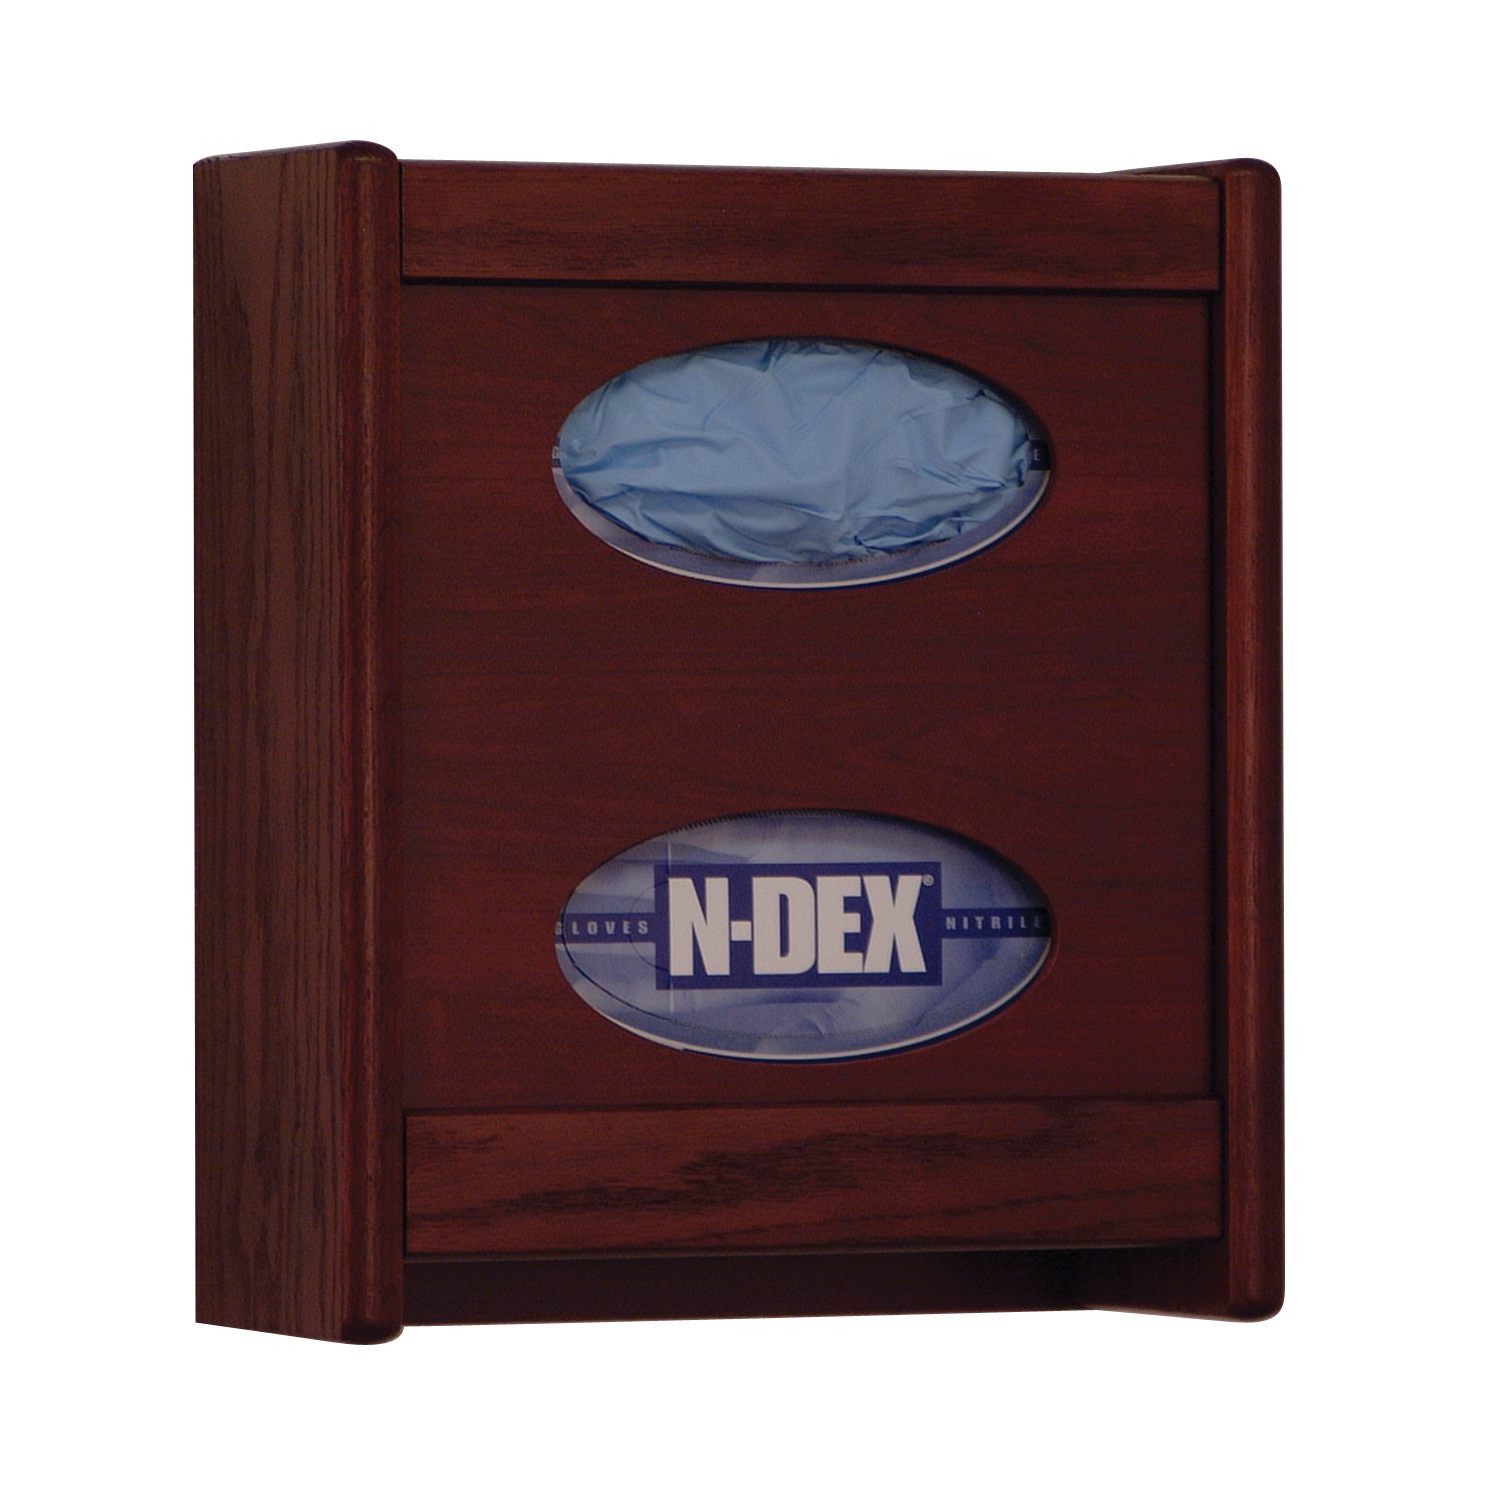 Offex 2 Pocket Glove/Tissue Box Holder Mahogany Finish